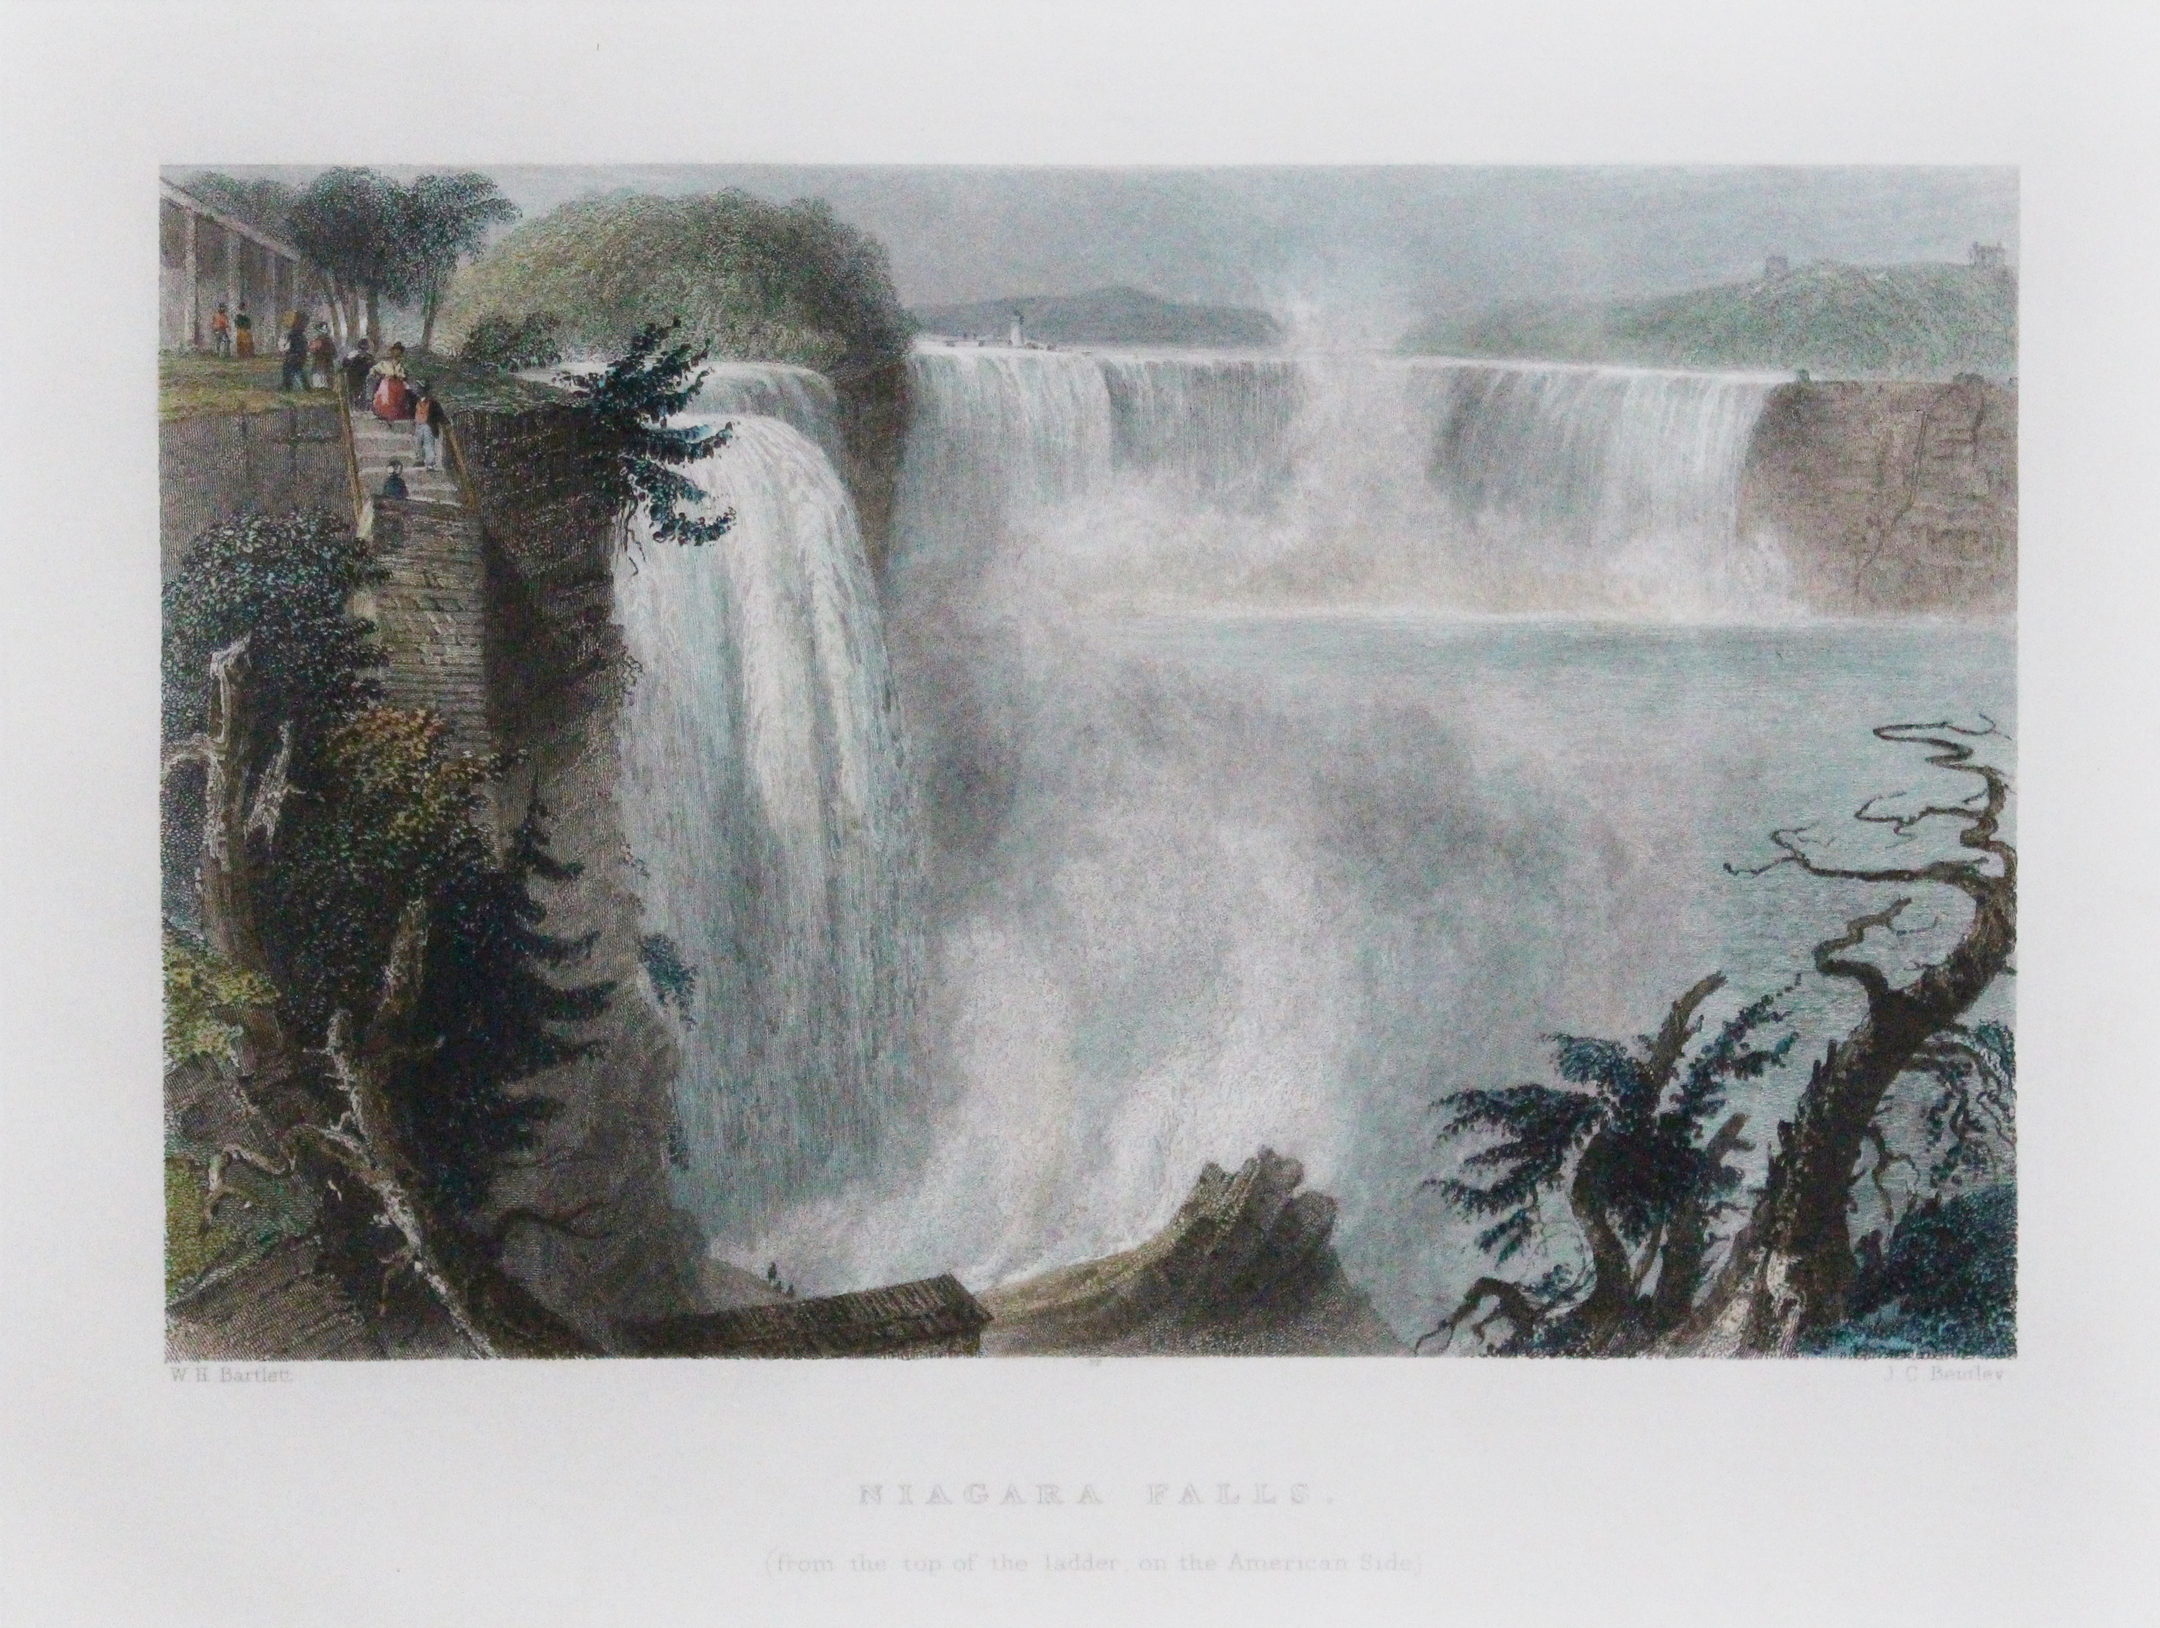 Niagara Falls (from top of ladder on U.S. side) (1839)